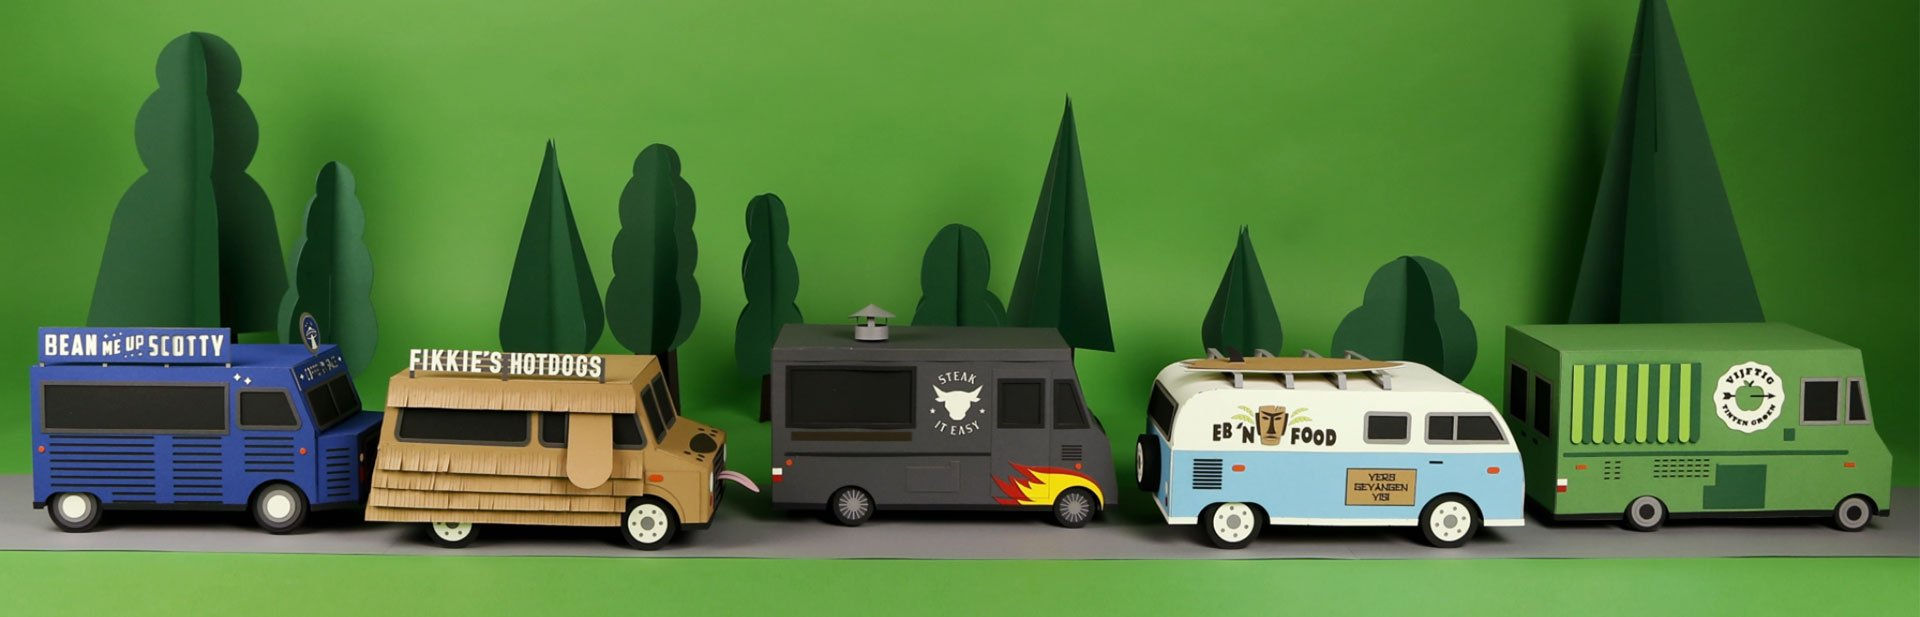 headerfoodtrucks